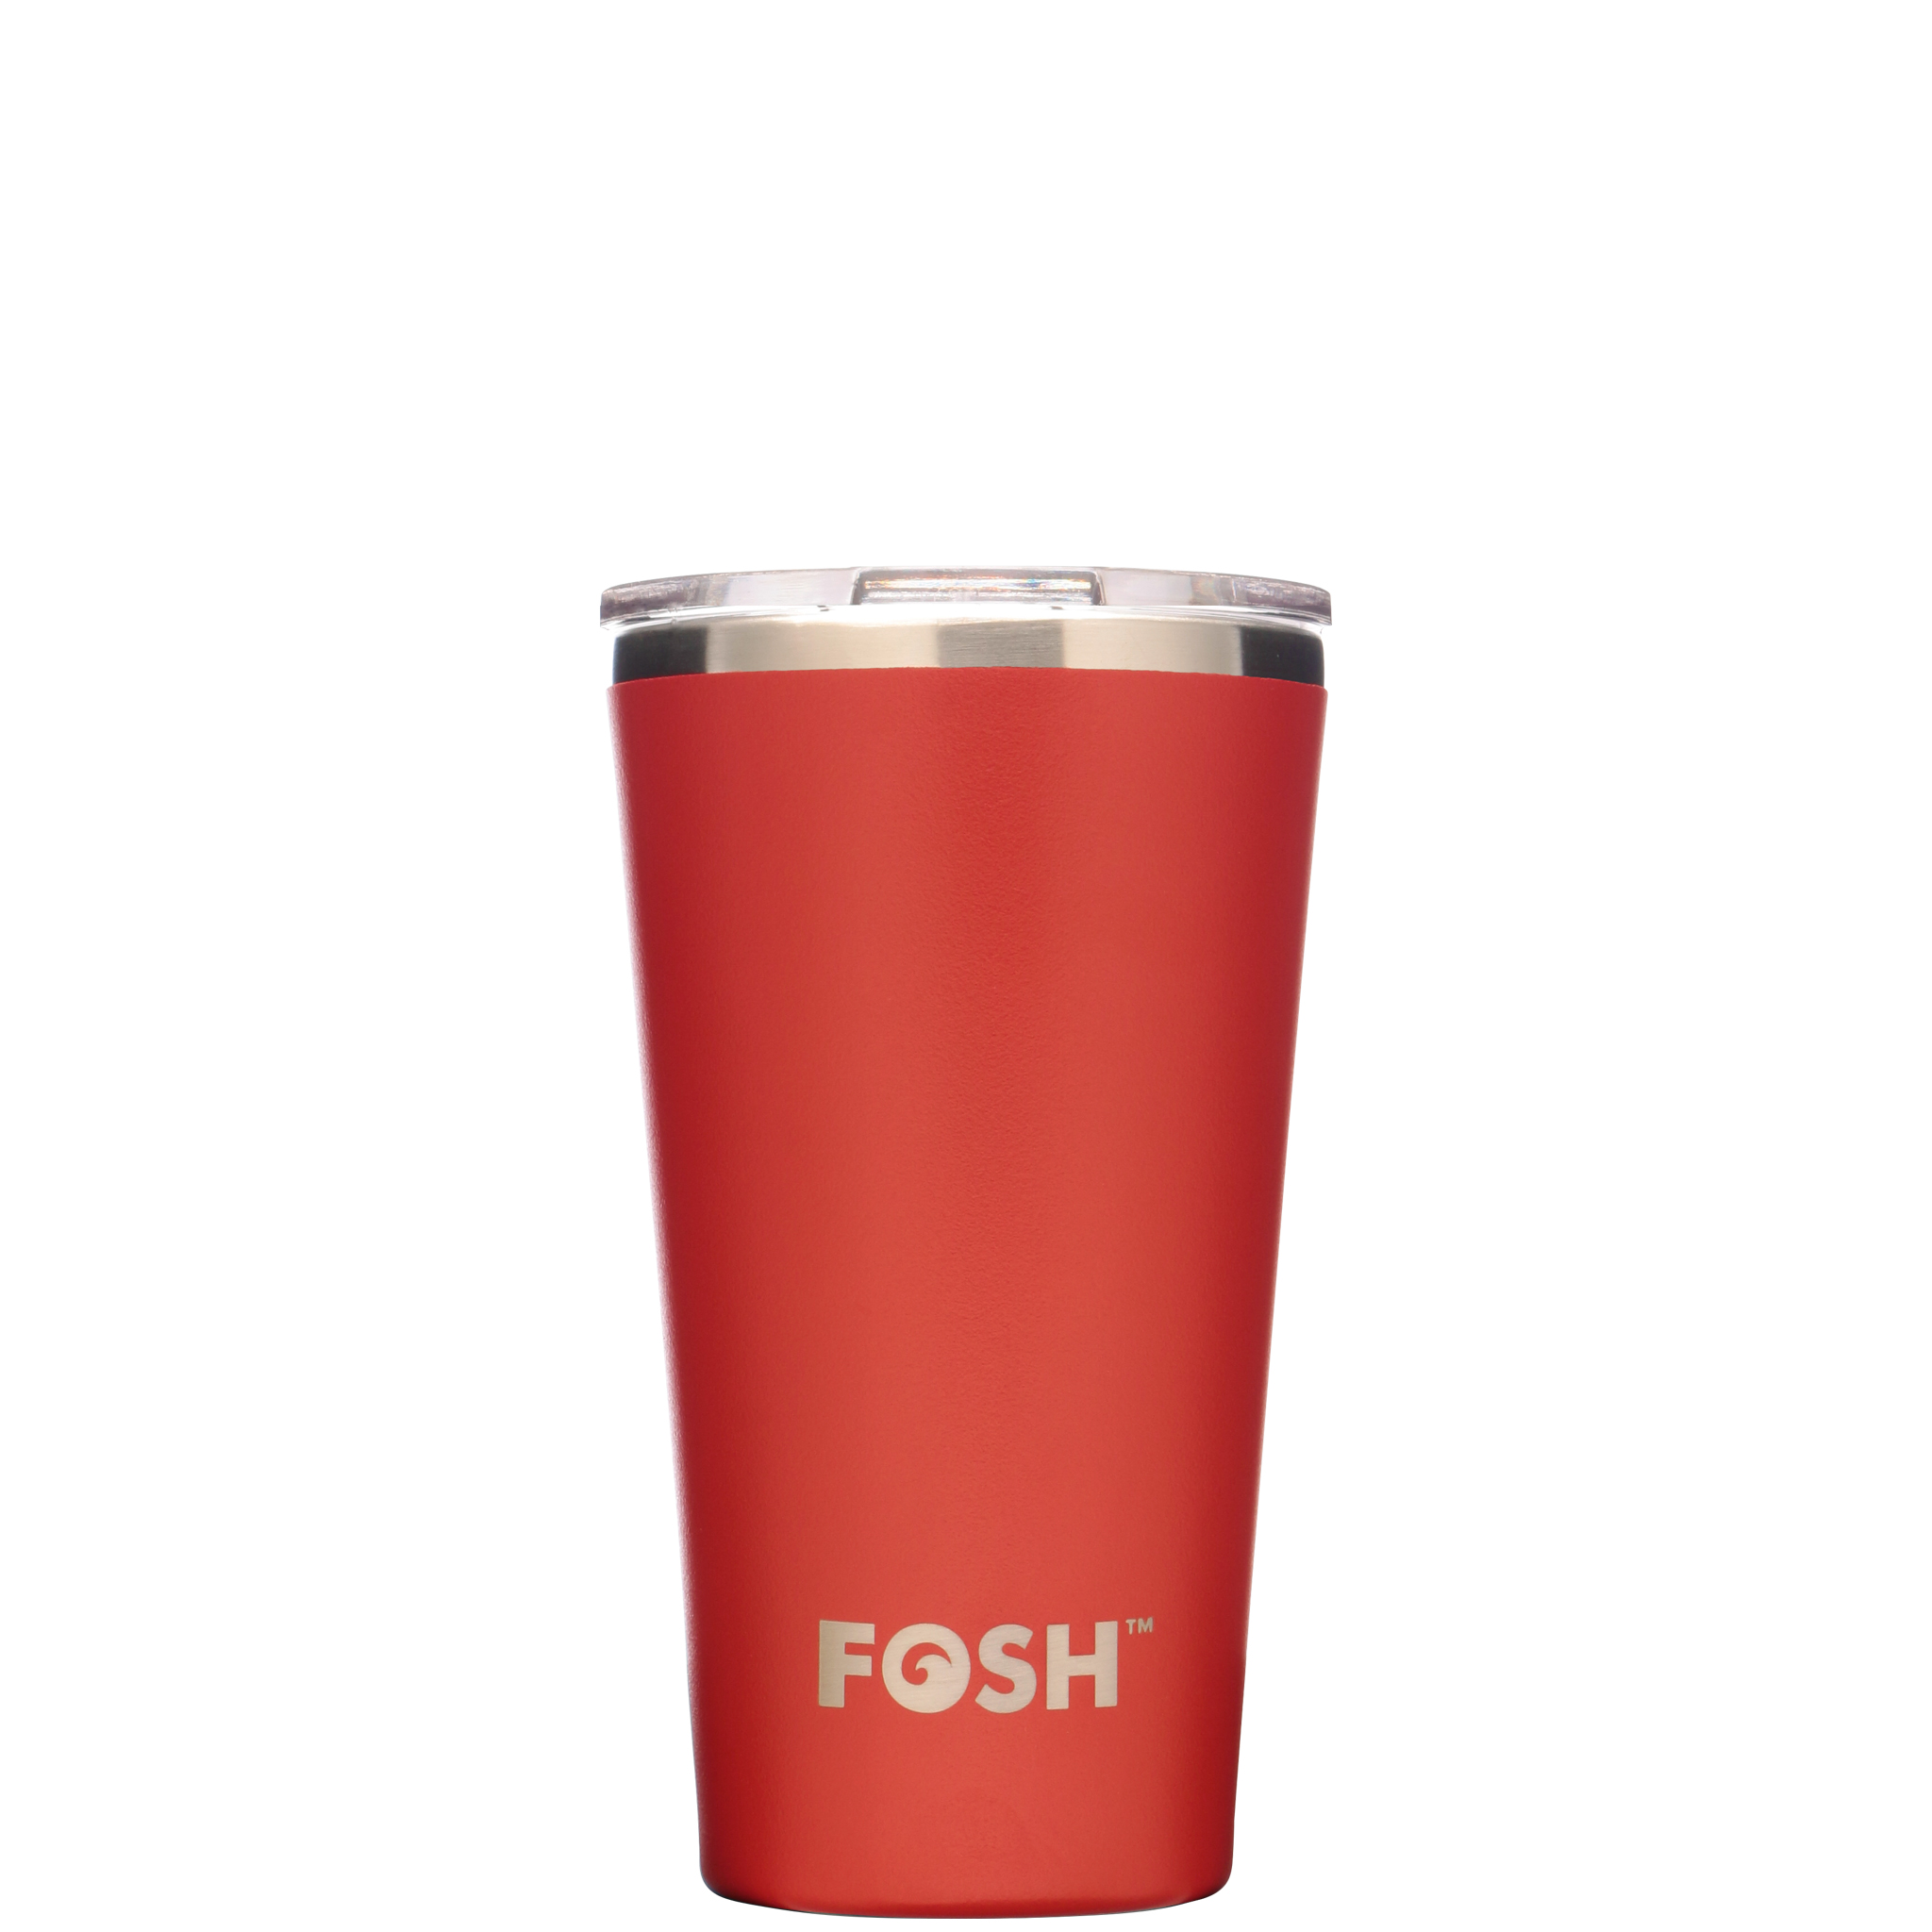 Stainless steel insulated coffee cup - Social blaze red